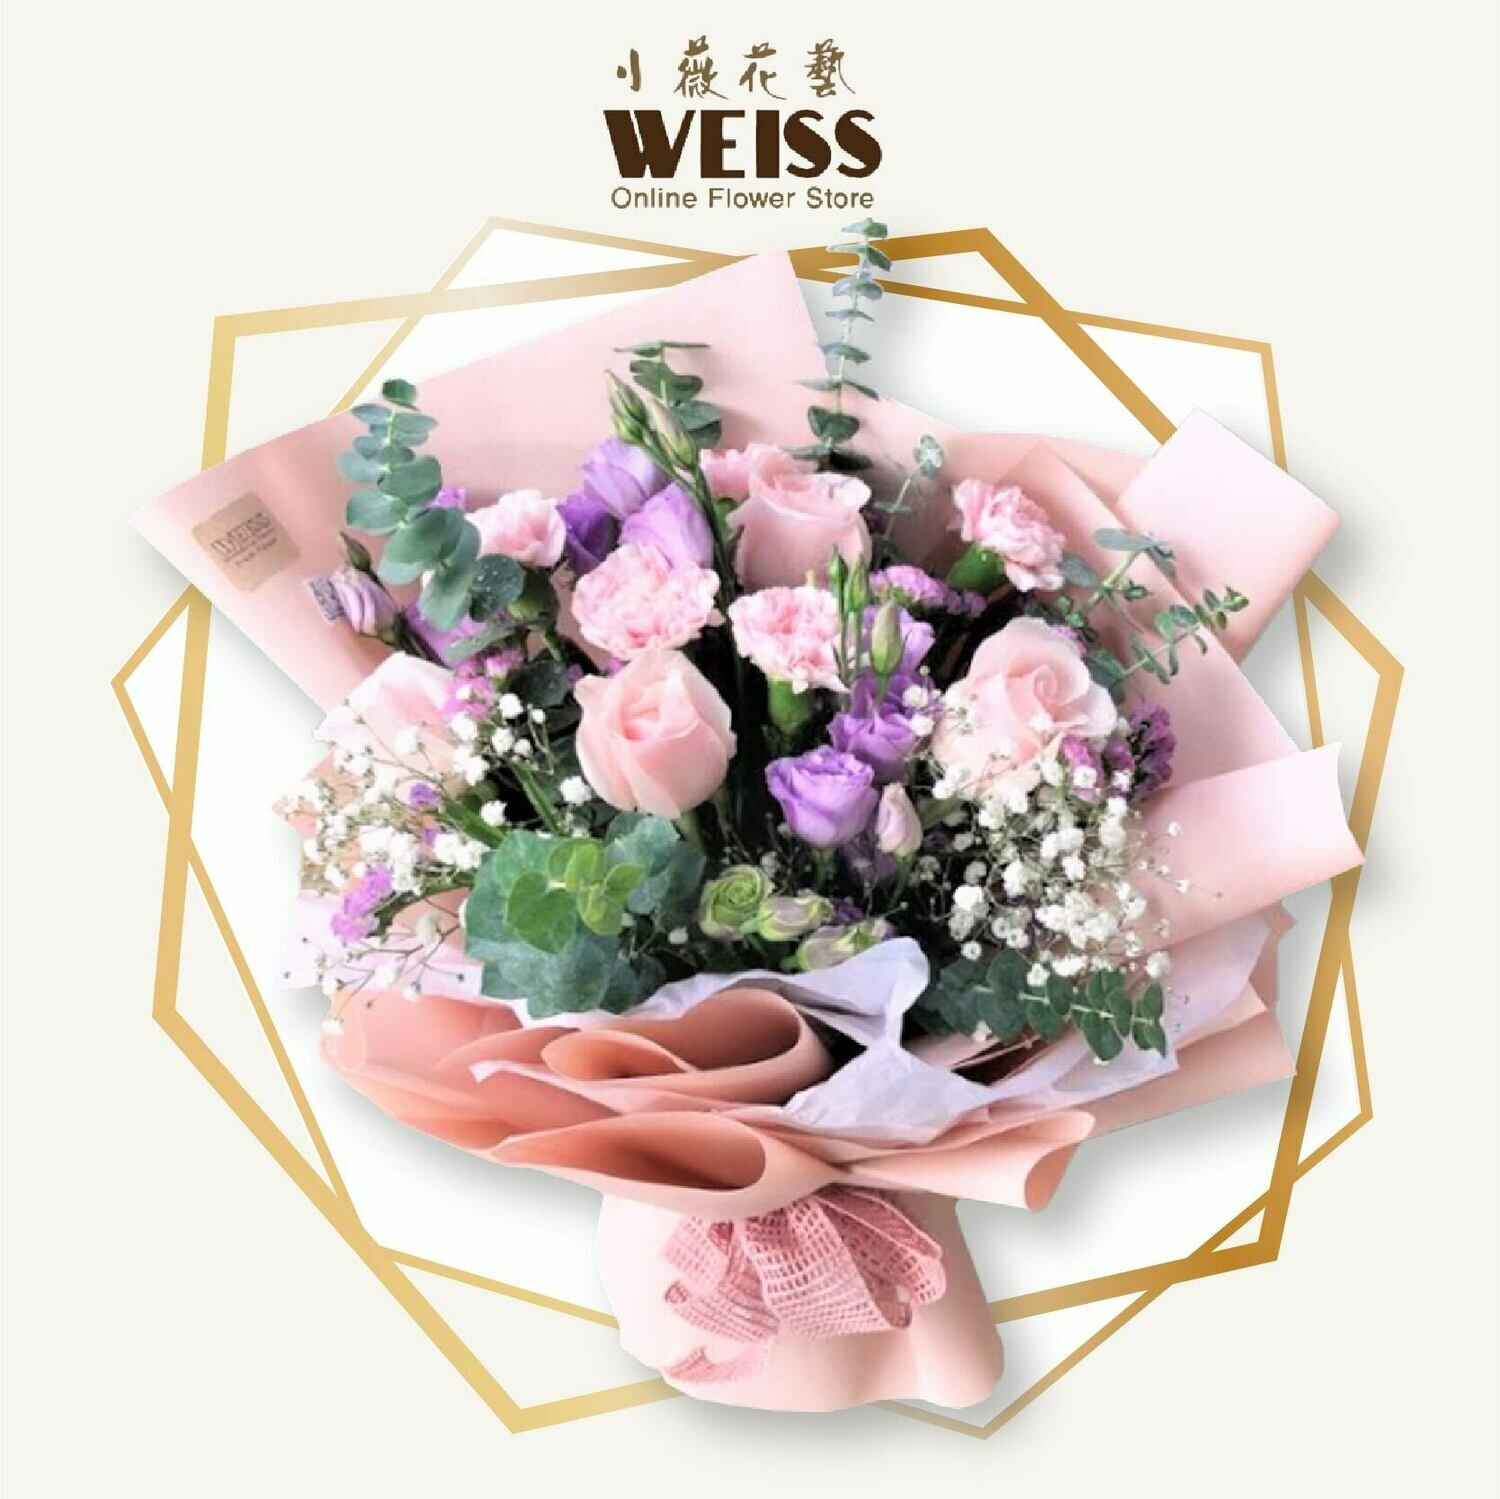 Weiss Florist 9stk Pink carnation mixed roses (Free Shipping! Only deliver in JB)